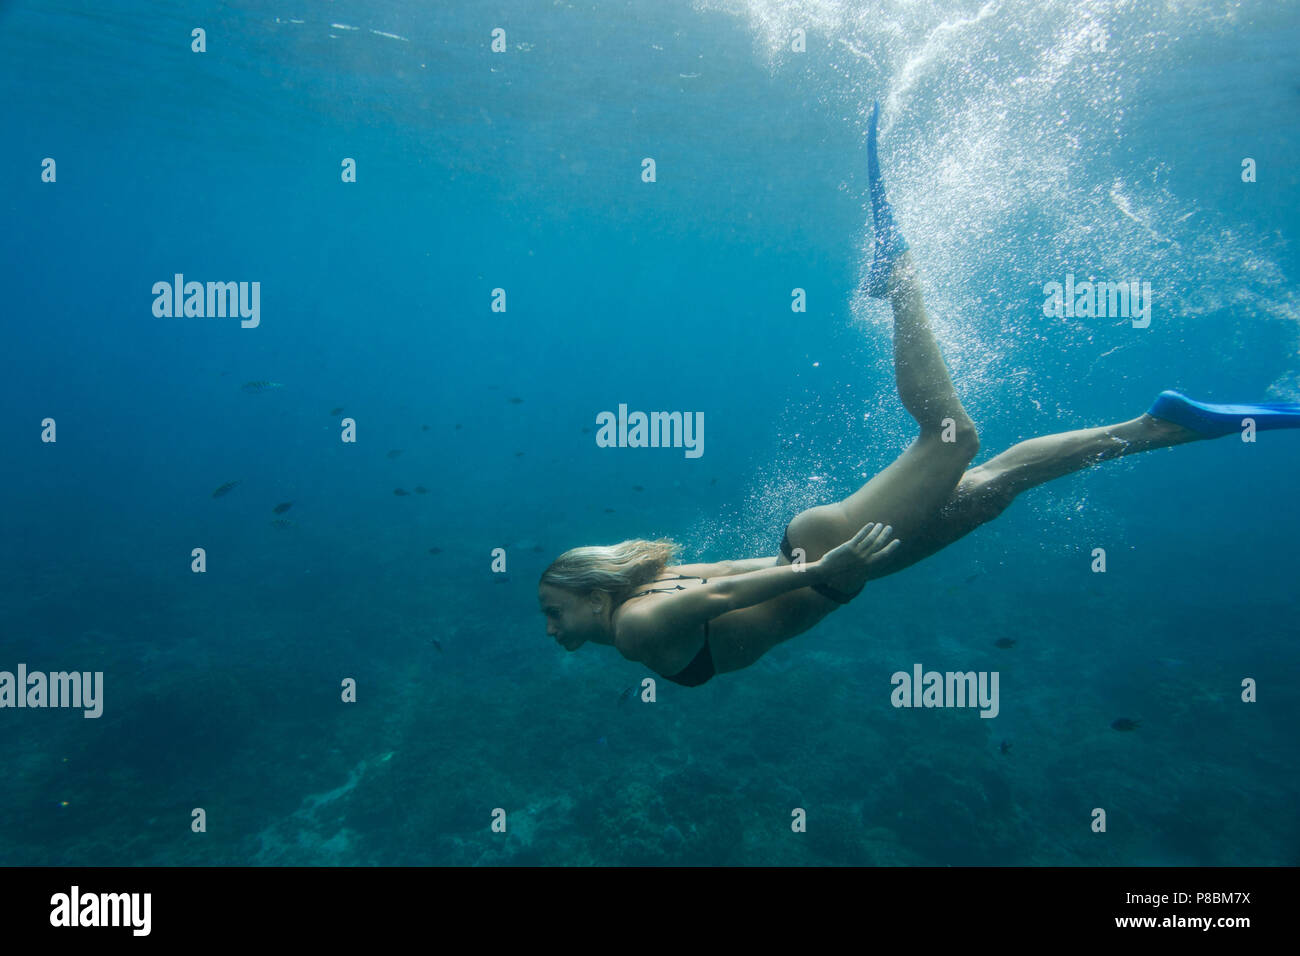 side view of woman in bikini and flippers diving in ocean alone - Stock Image